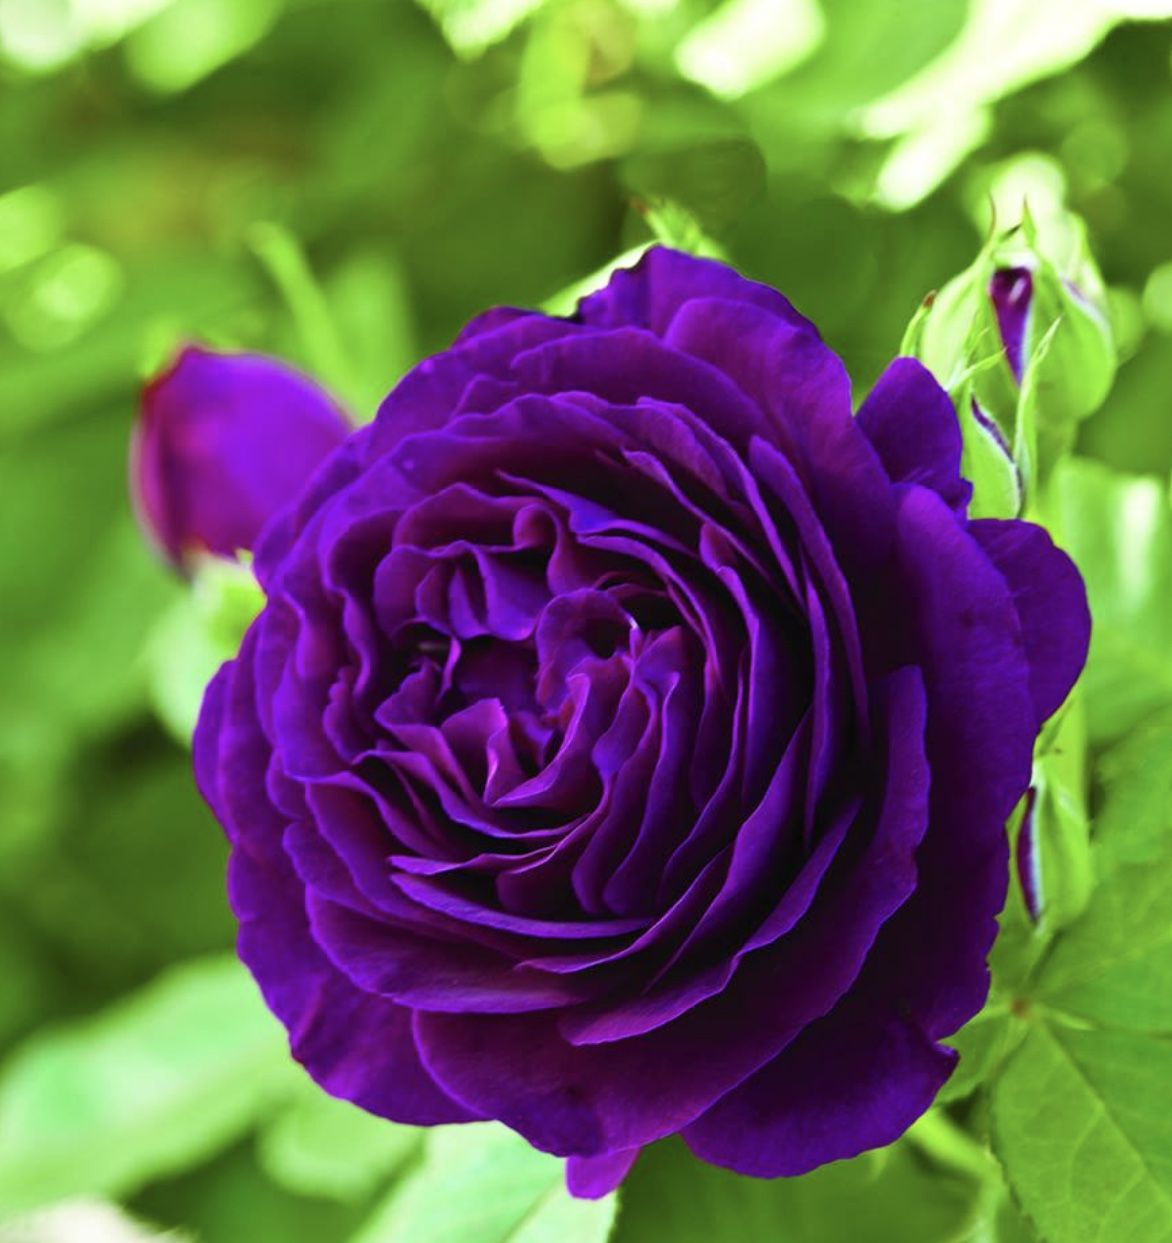 A rare and beautiful rose named twilight zone love the purple color a rare and beautiful rose named twilight zone love the purple color izmirmasajfo